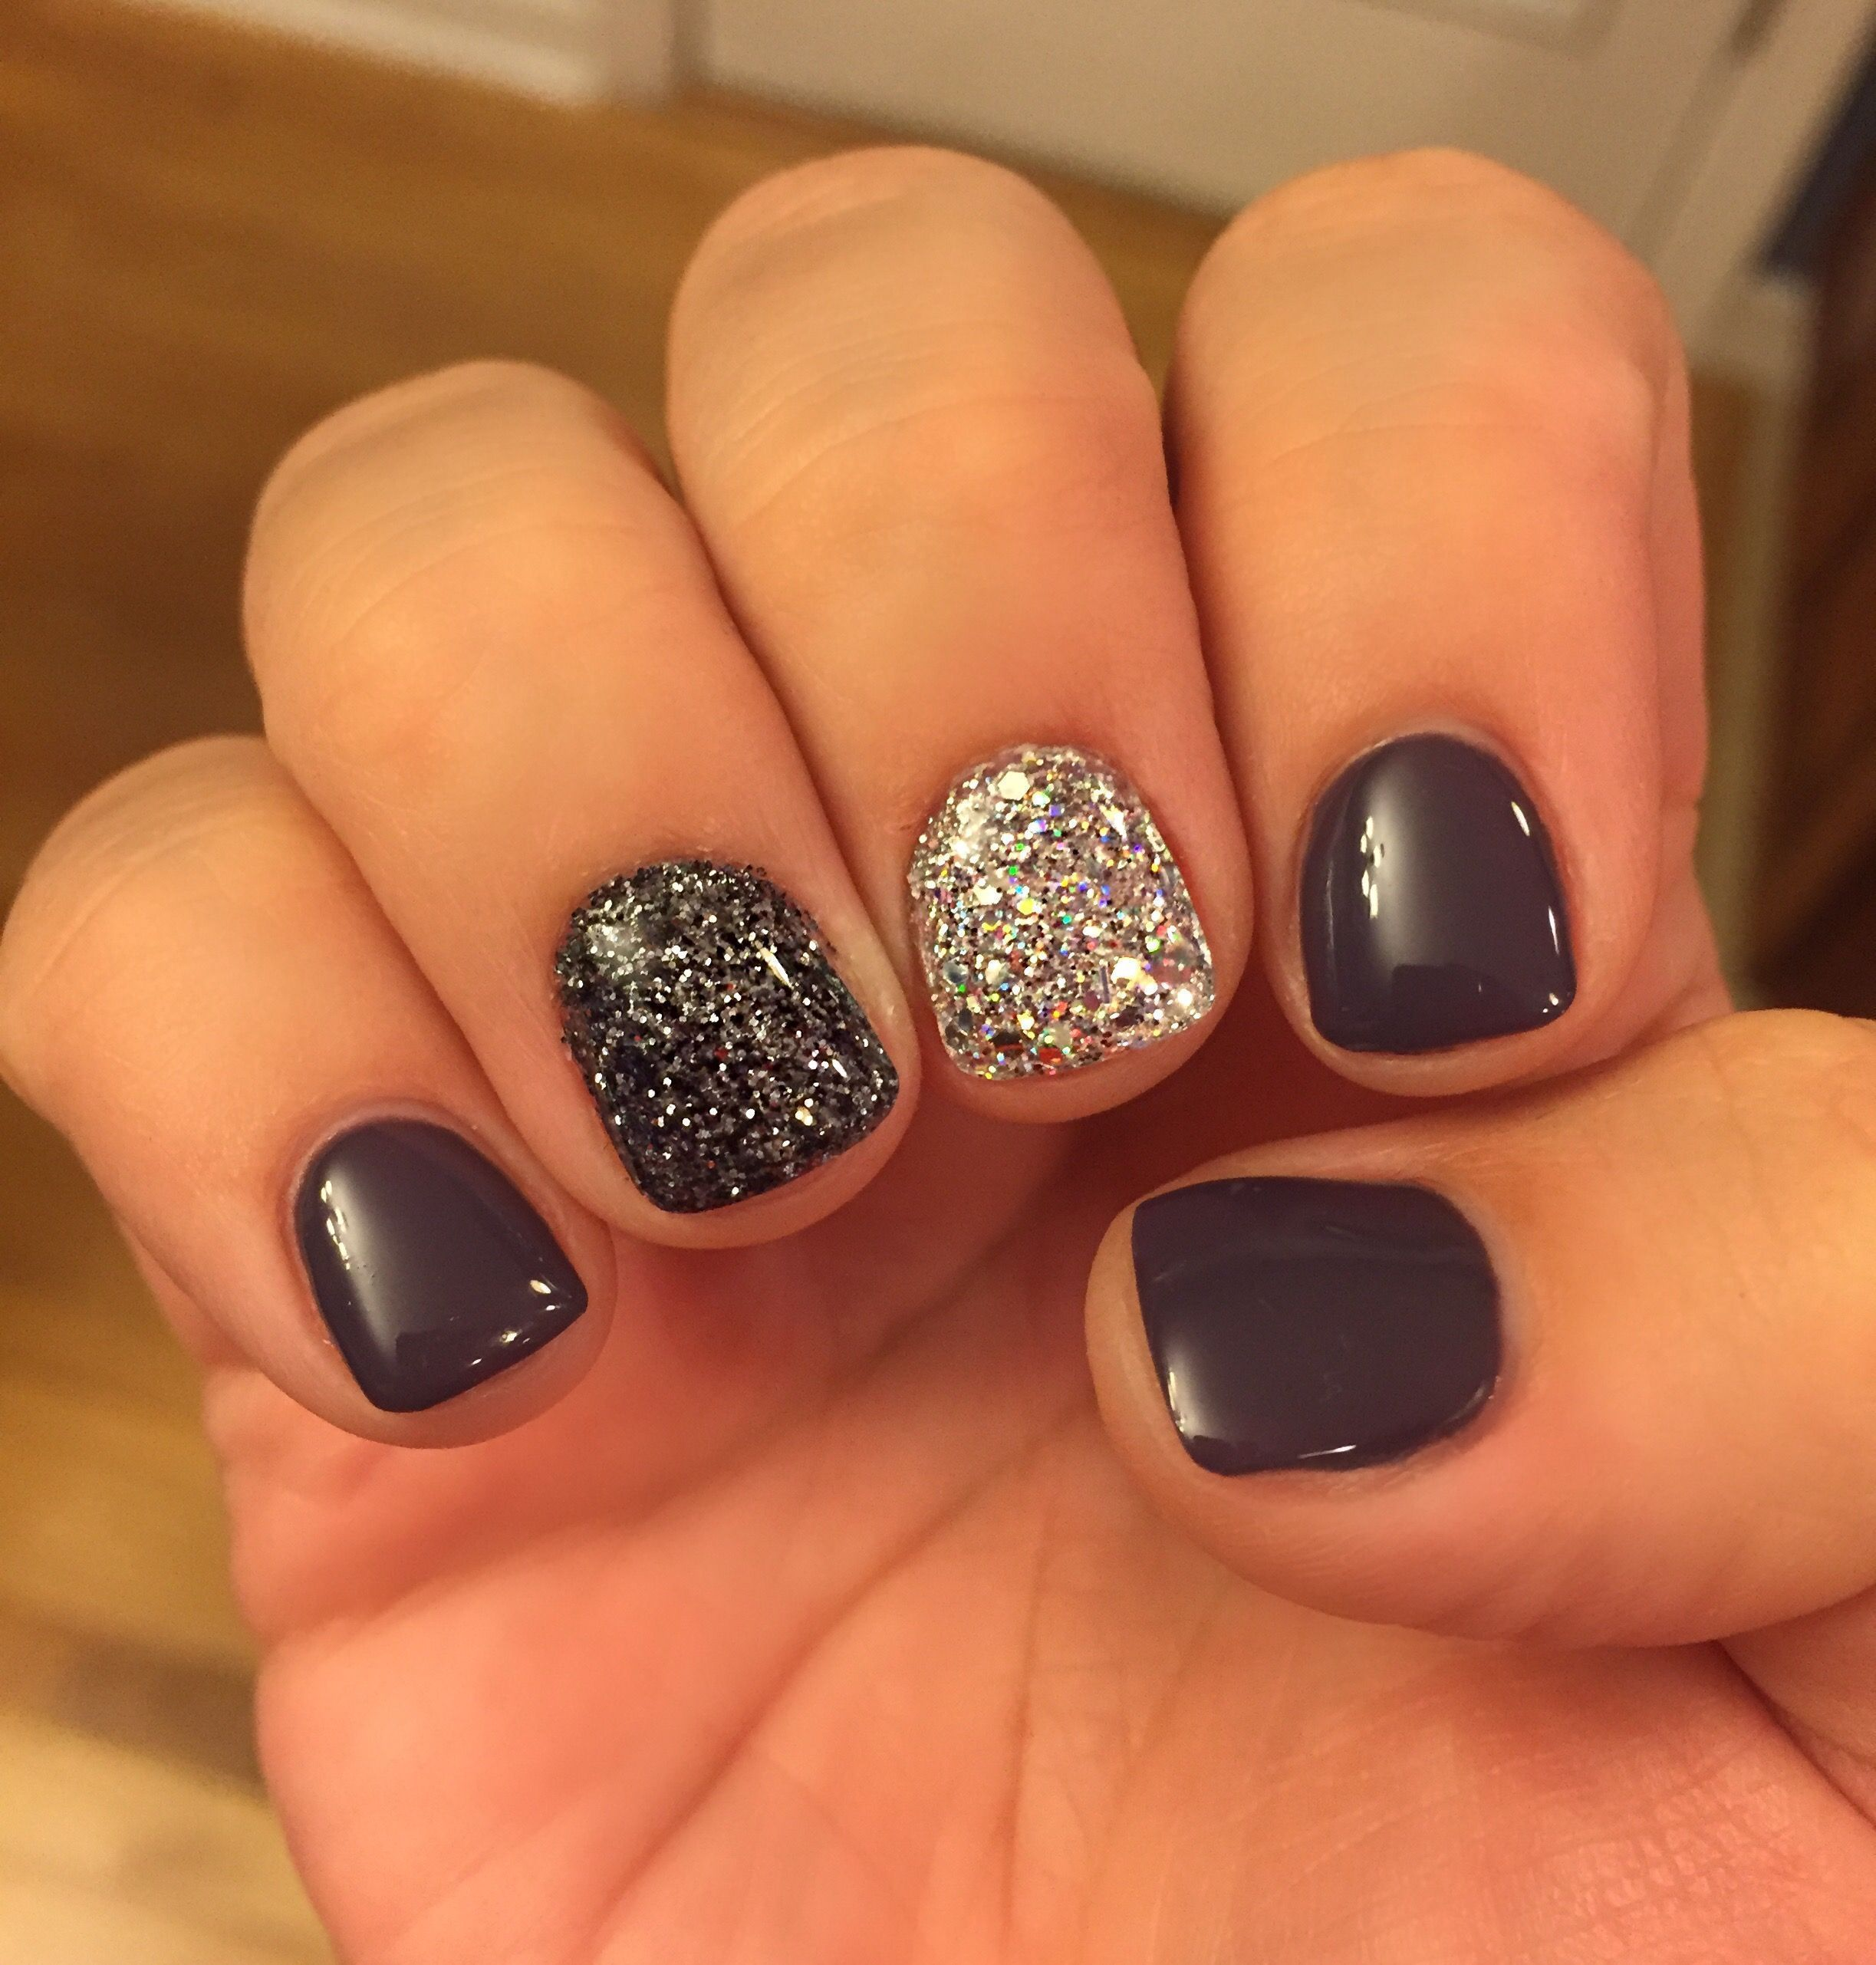 Nail Color Trends 2019 Gel Nail Designs 2019 Autumn Nail Polish Trends Spring 2019 Black Gel Nails Pink Gel Nails Glitter Accent Nails